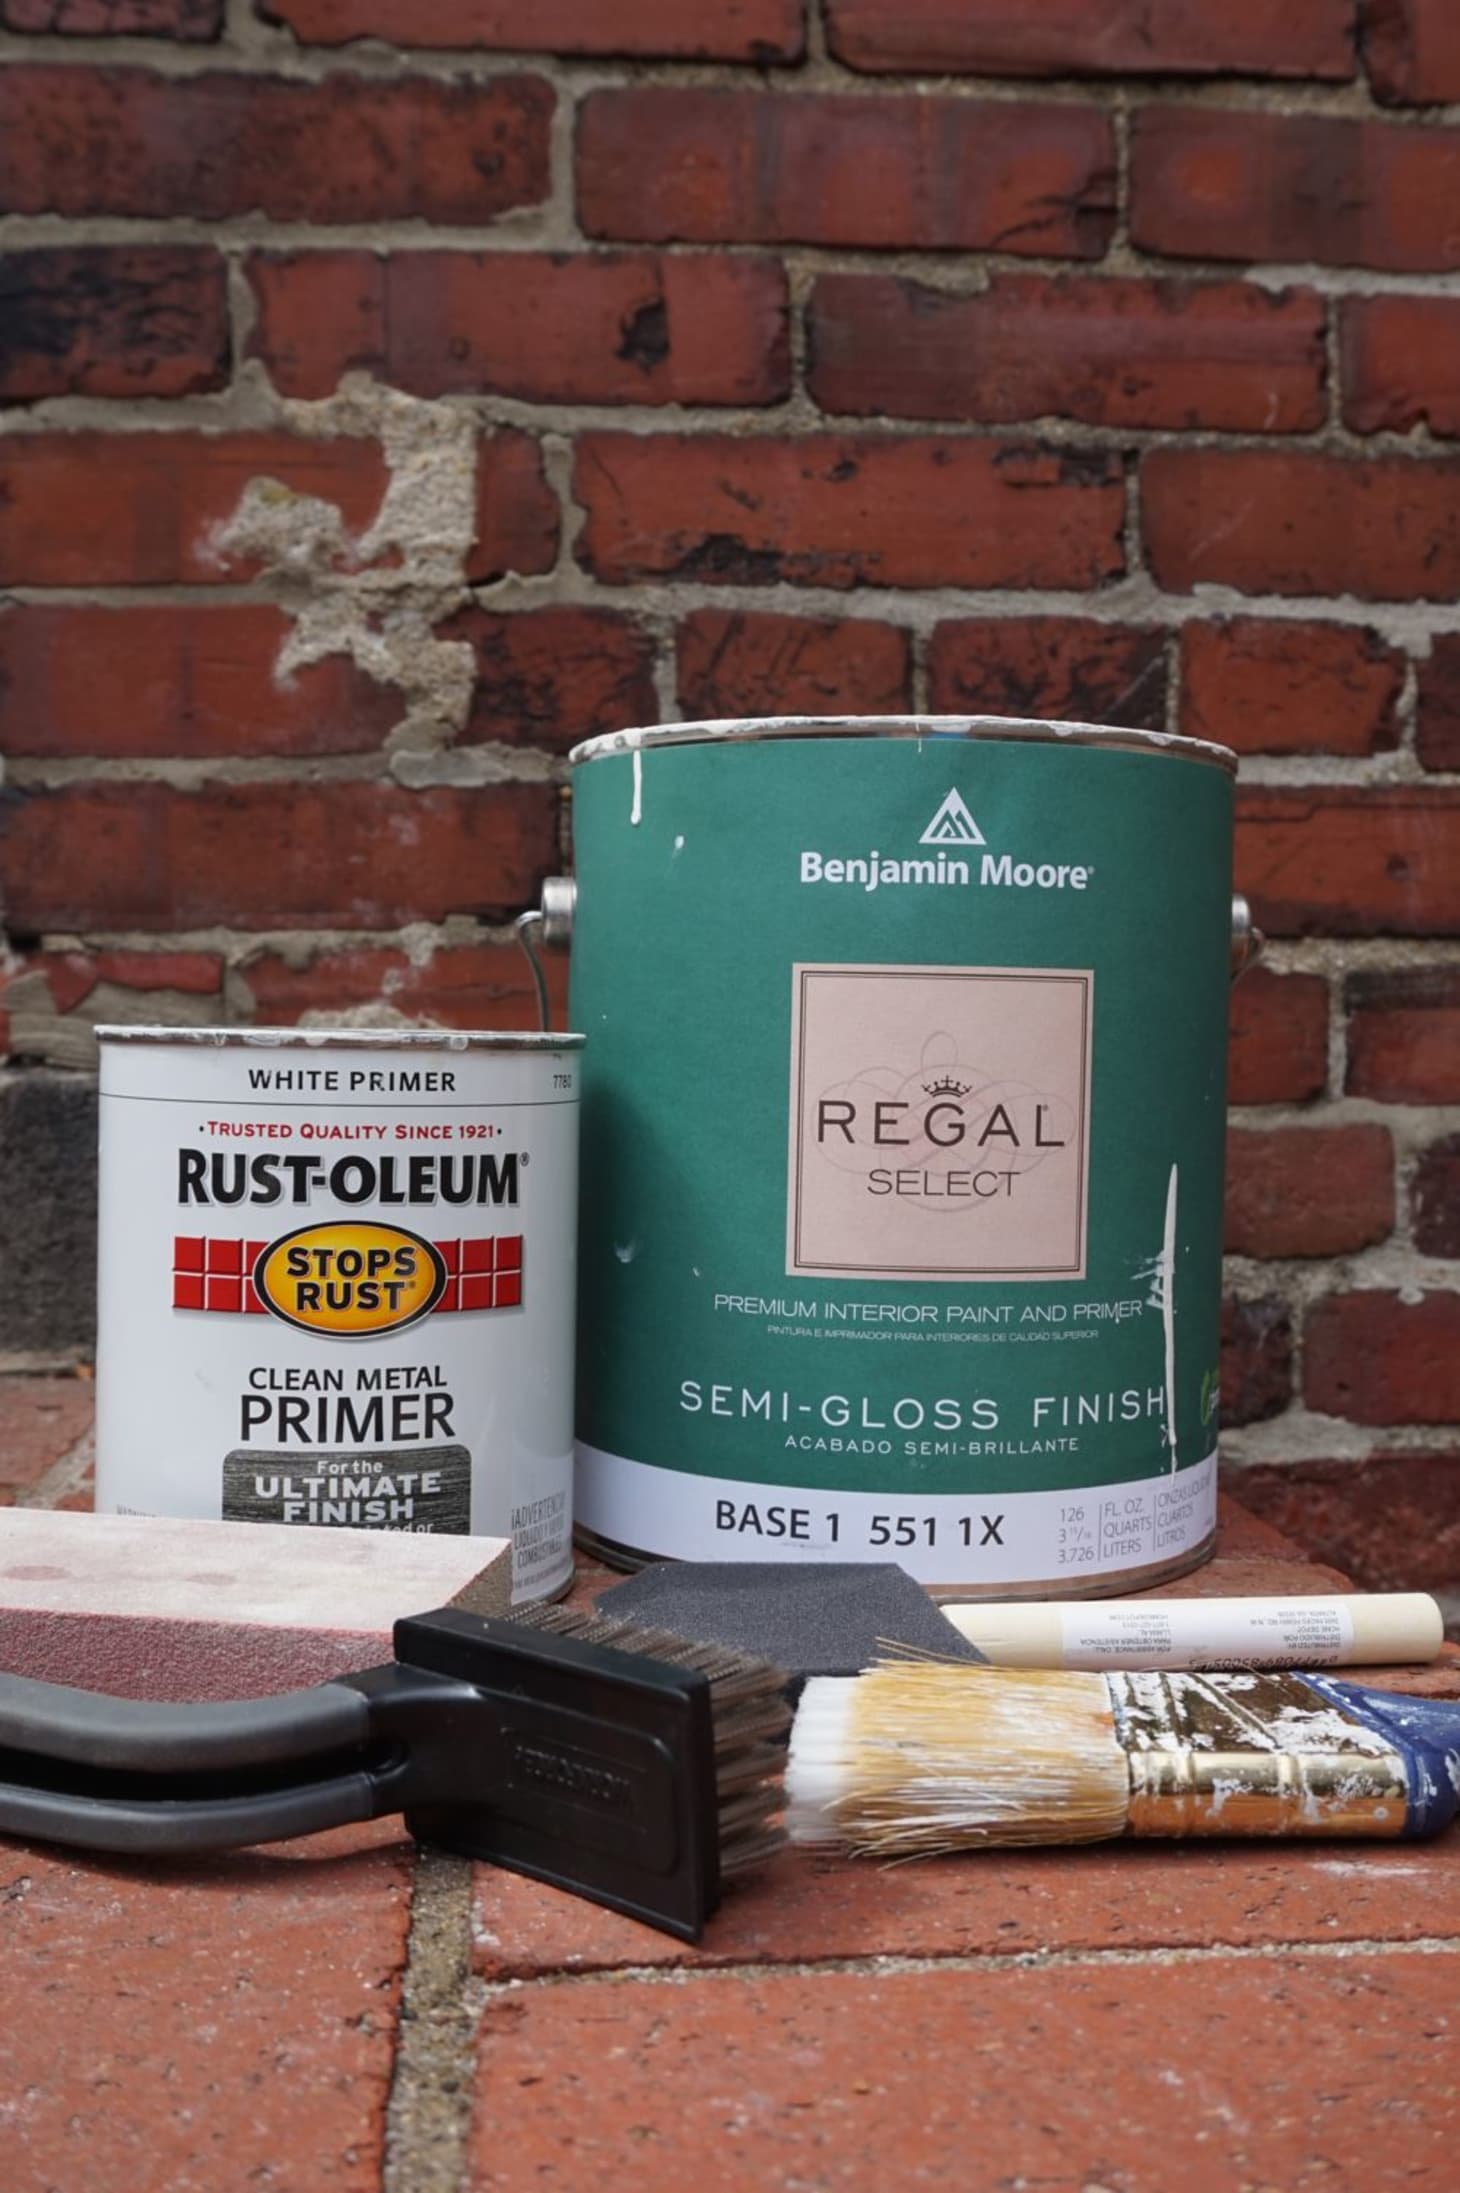 How To Paint Metal Baseboard Heater Covers: Tutorial | Apartment Therapy